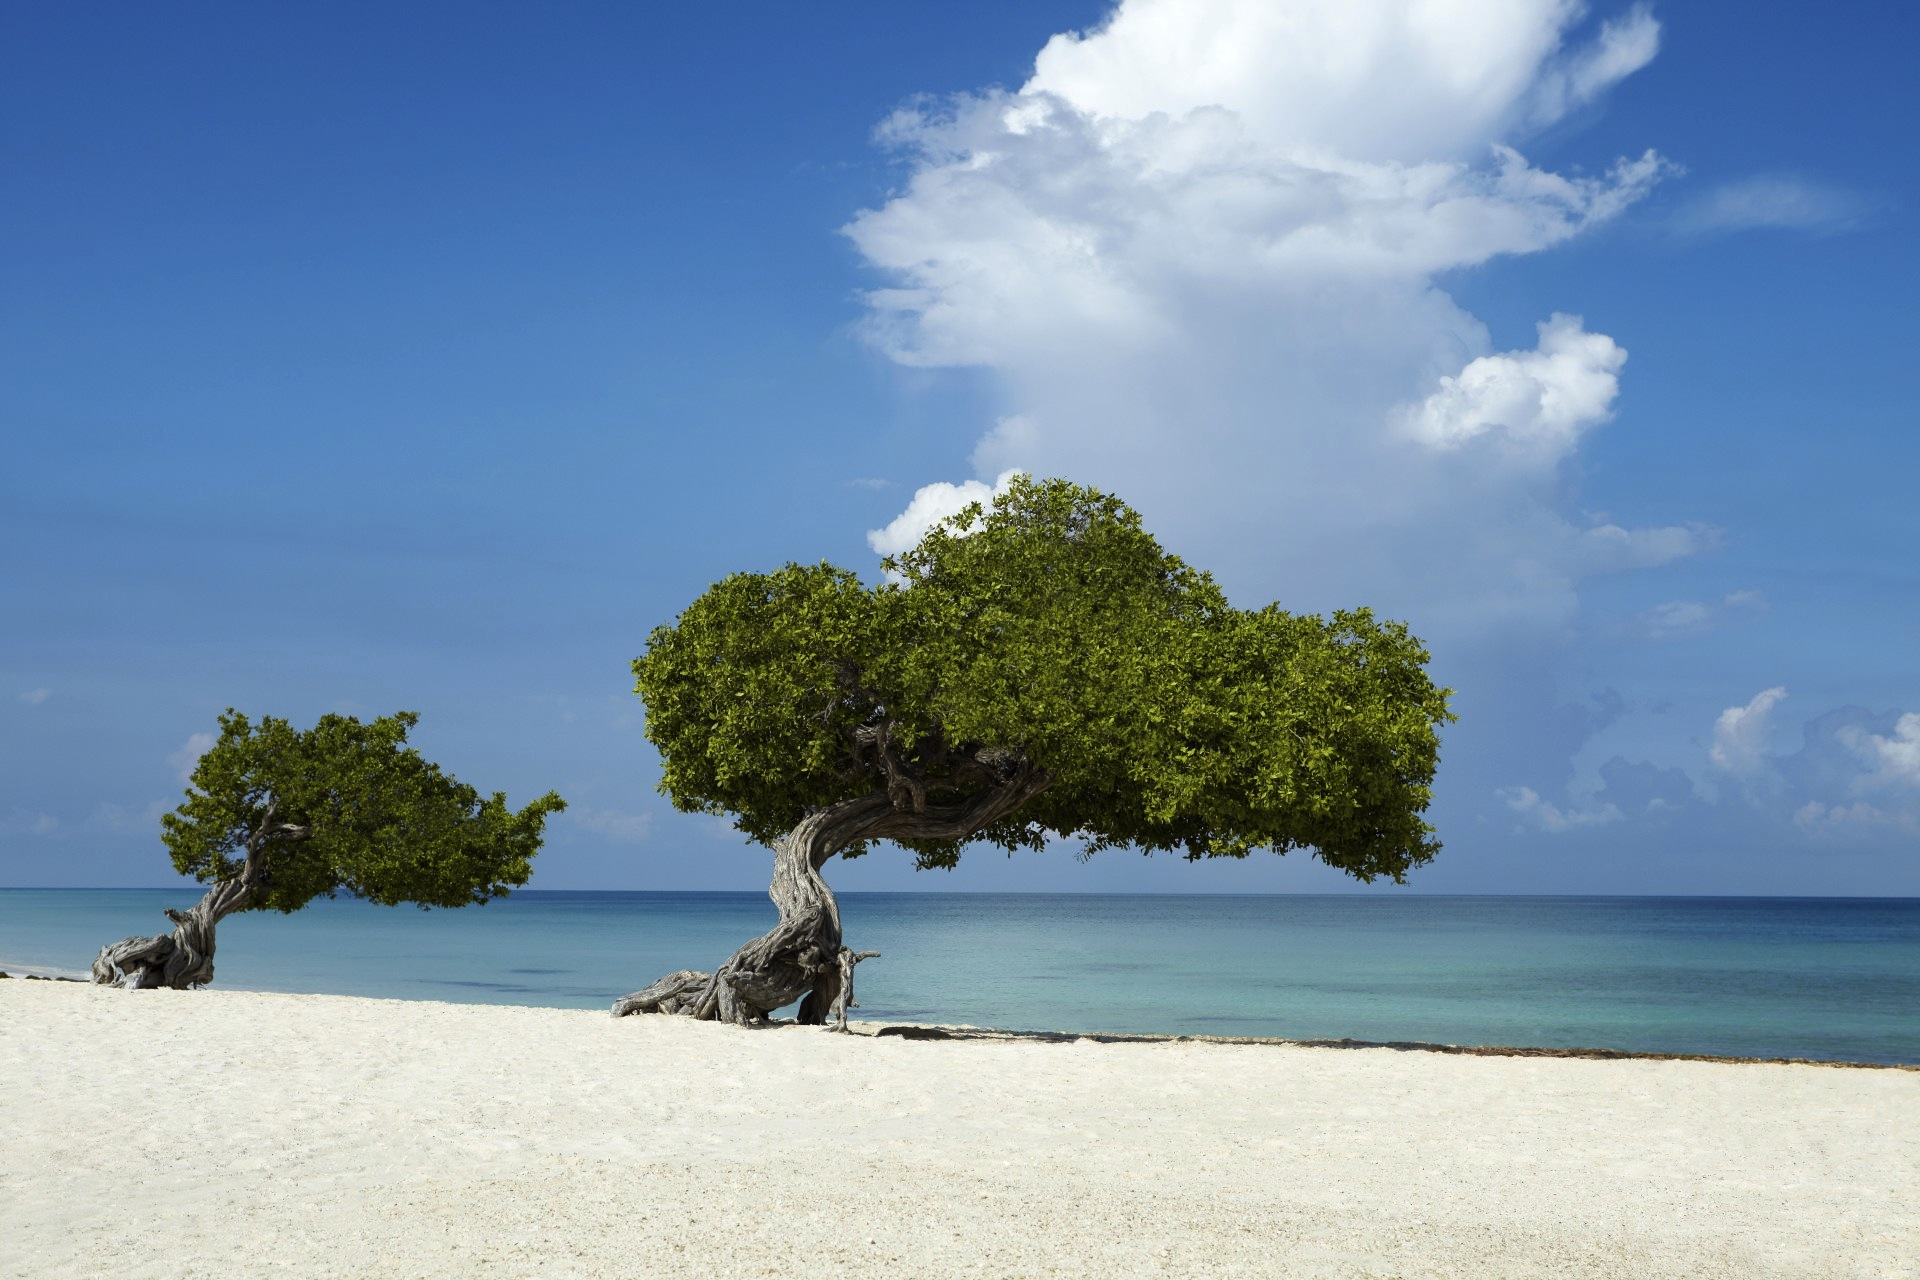 Tree on the beach with sand